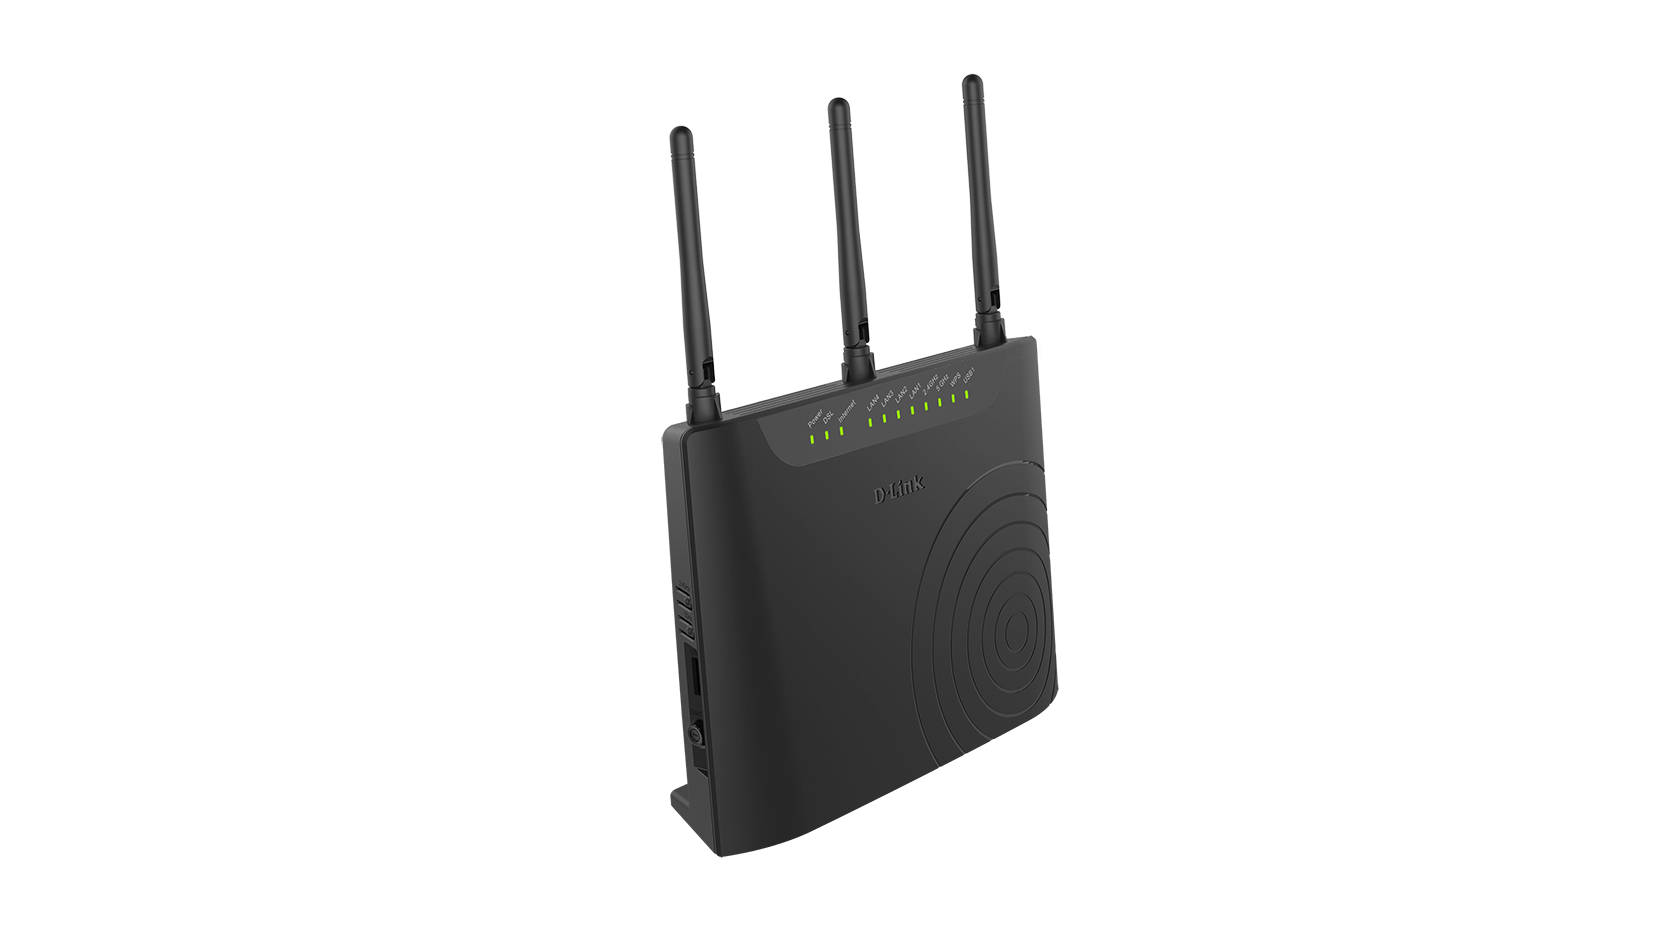 DSL-3682 Wireless AC750 Dual-Band VDSL/ADSL Modem Router | D-Link ...